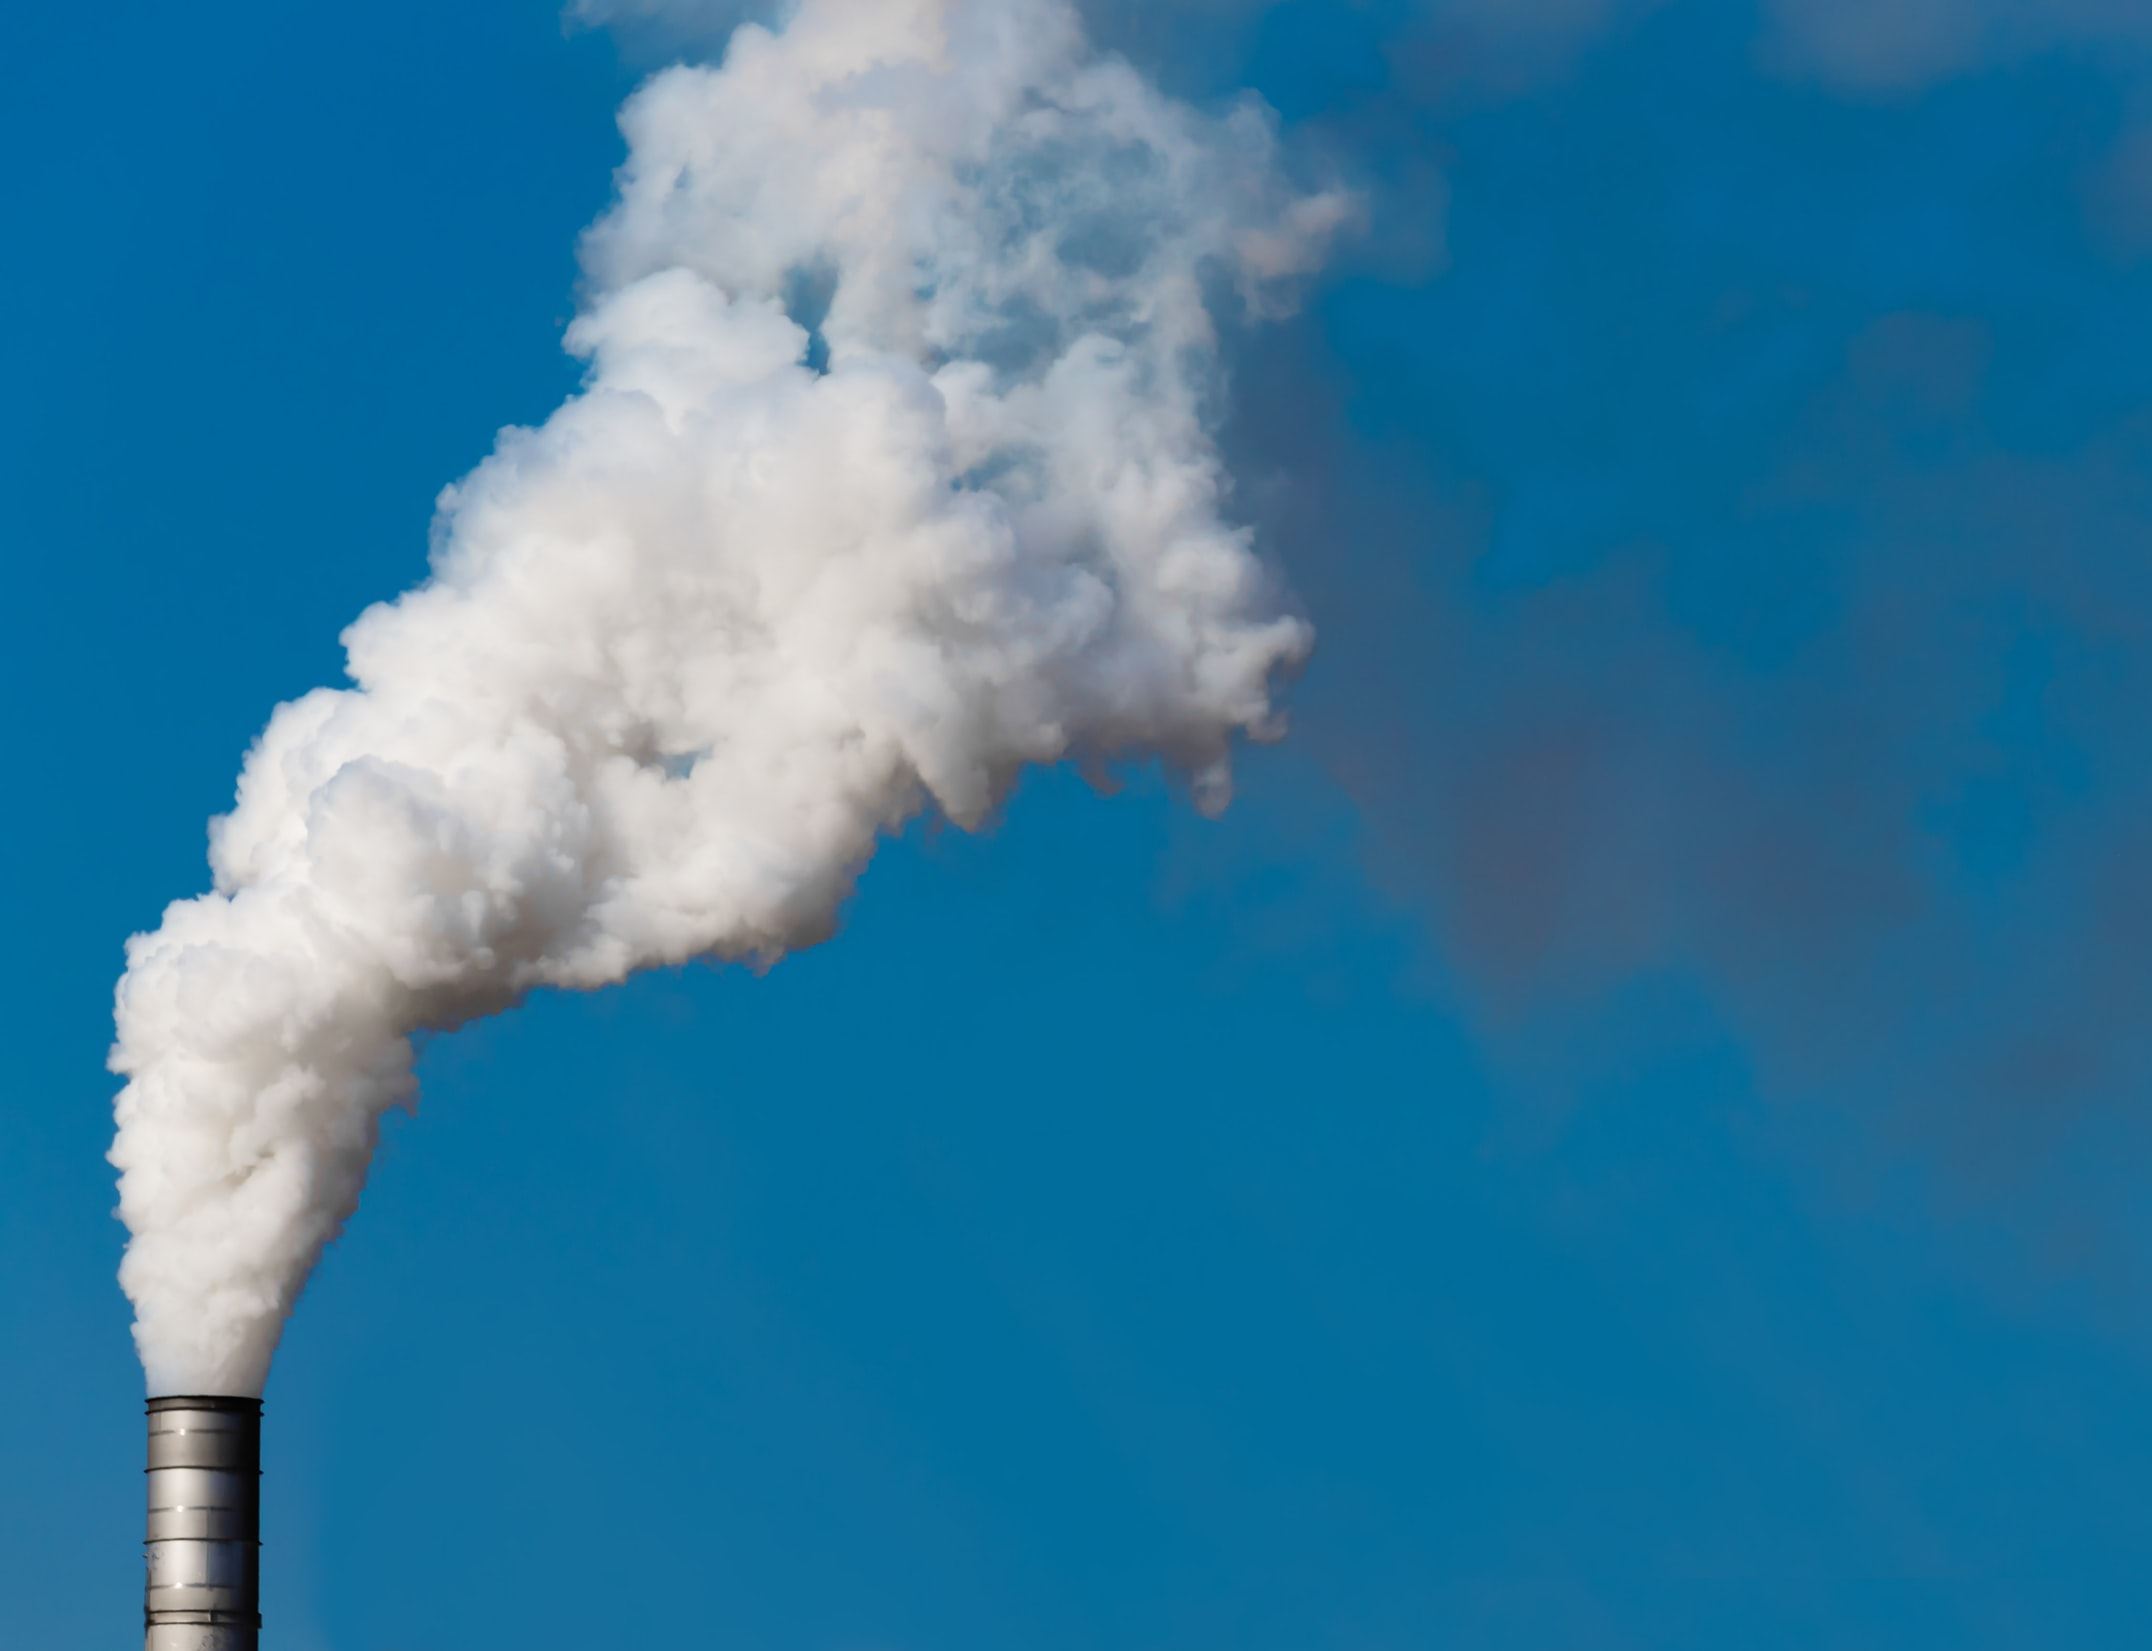 Industrial Pollution Prevention: 2021 Trends and Beyond